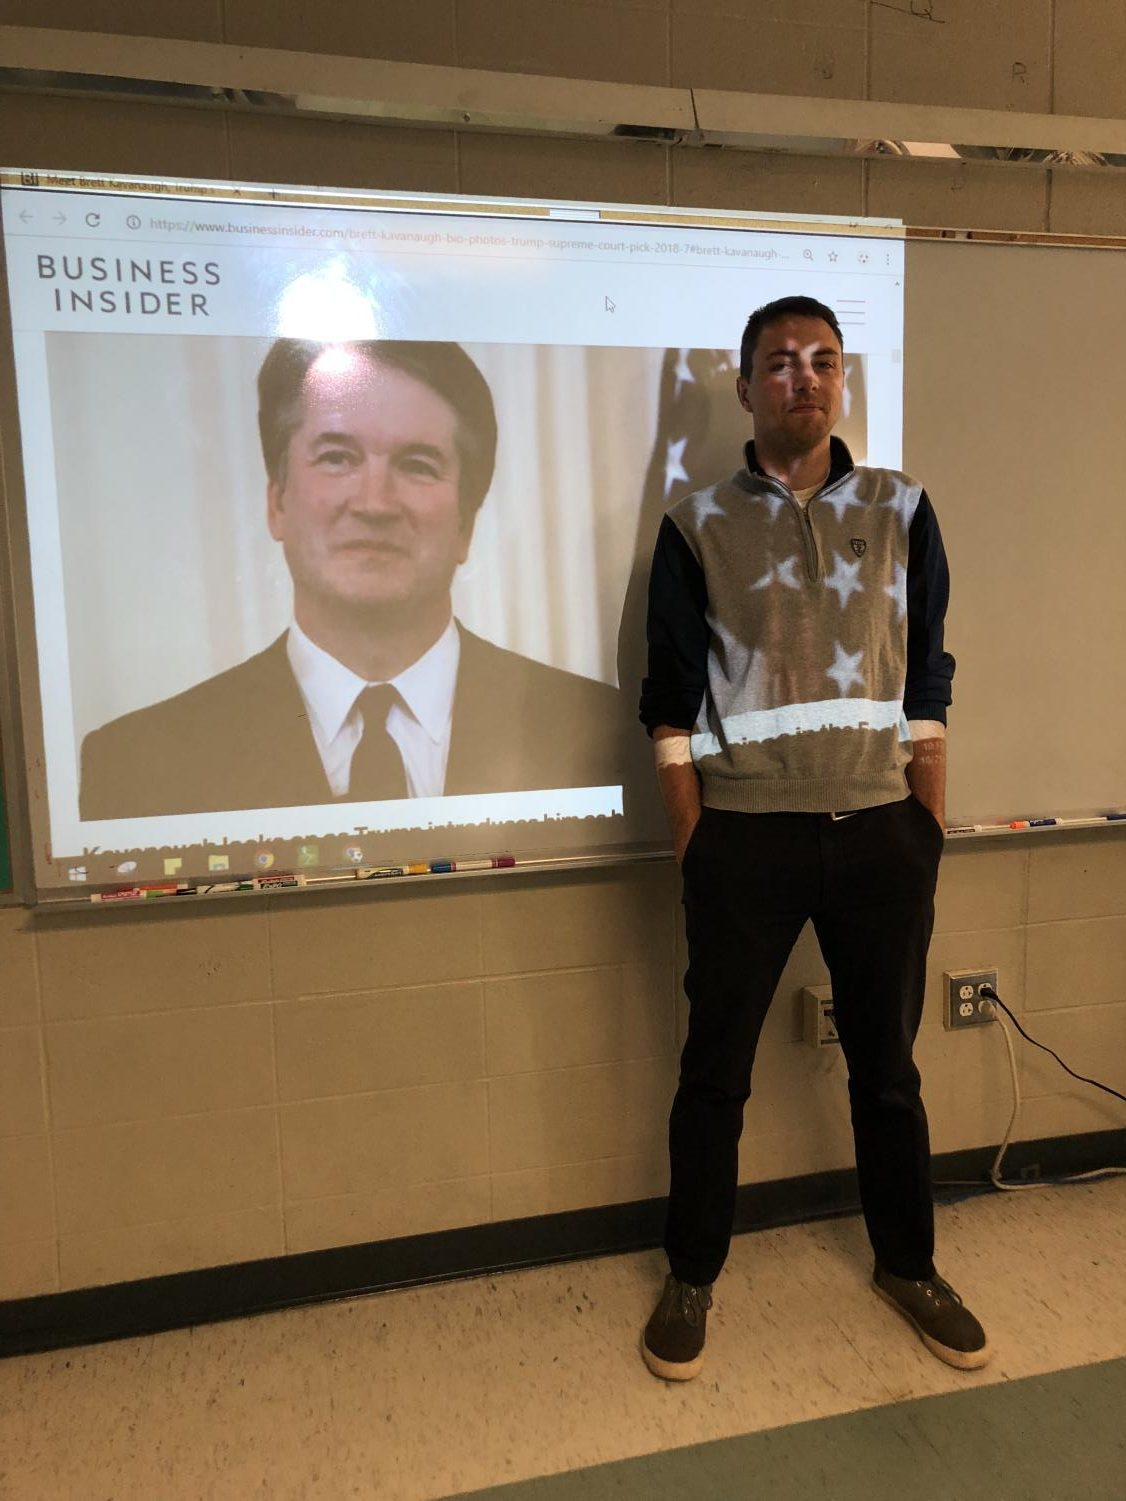 Mr. Galante stands before a projected image of Supreme Court Justice Brett Kavanaugh.